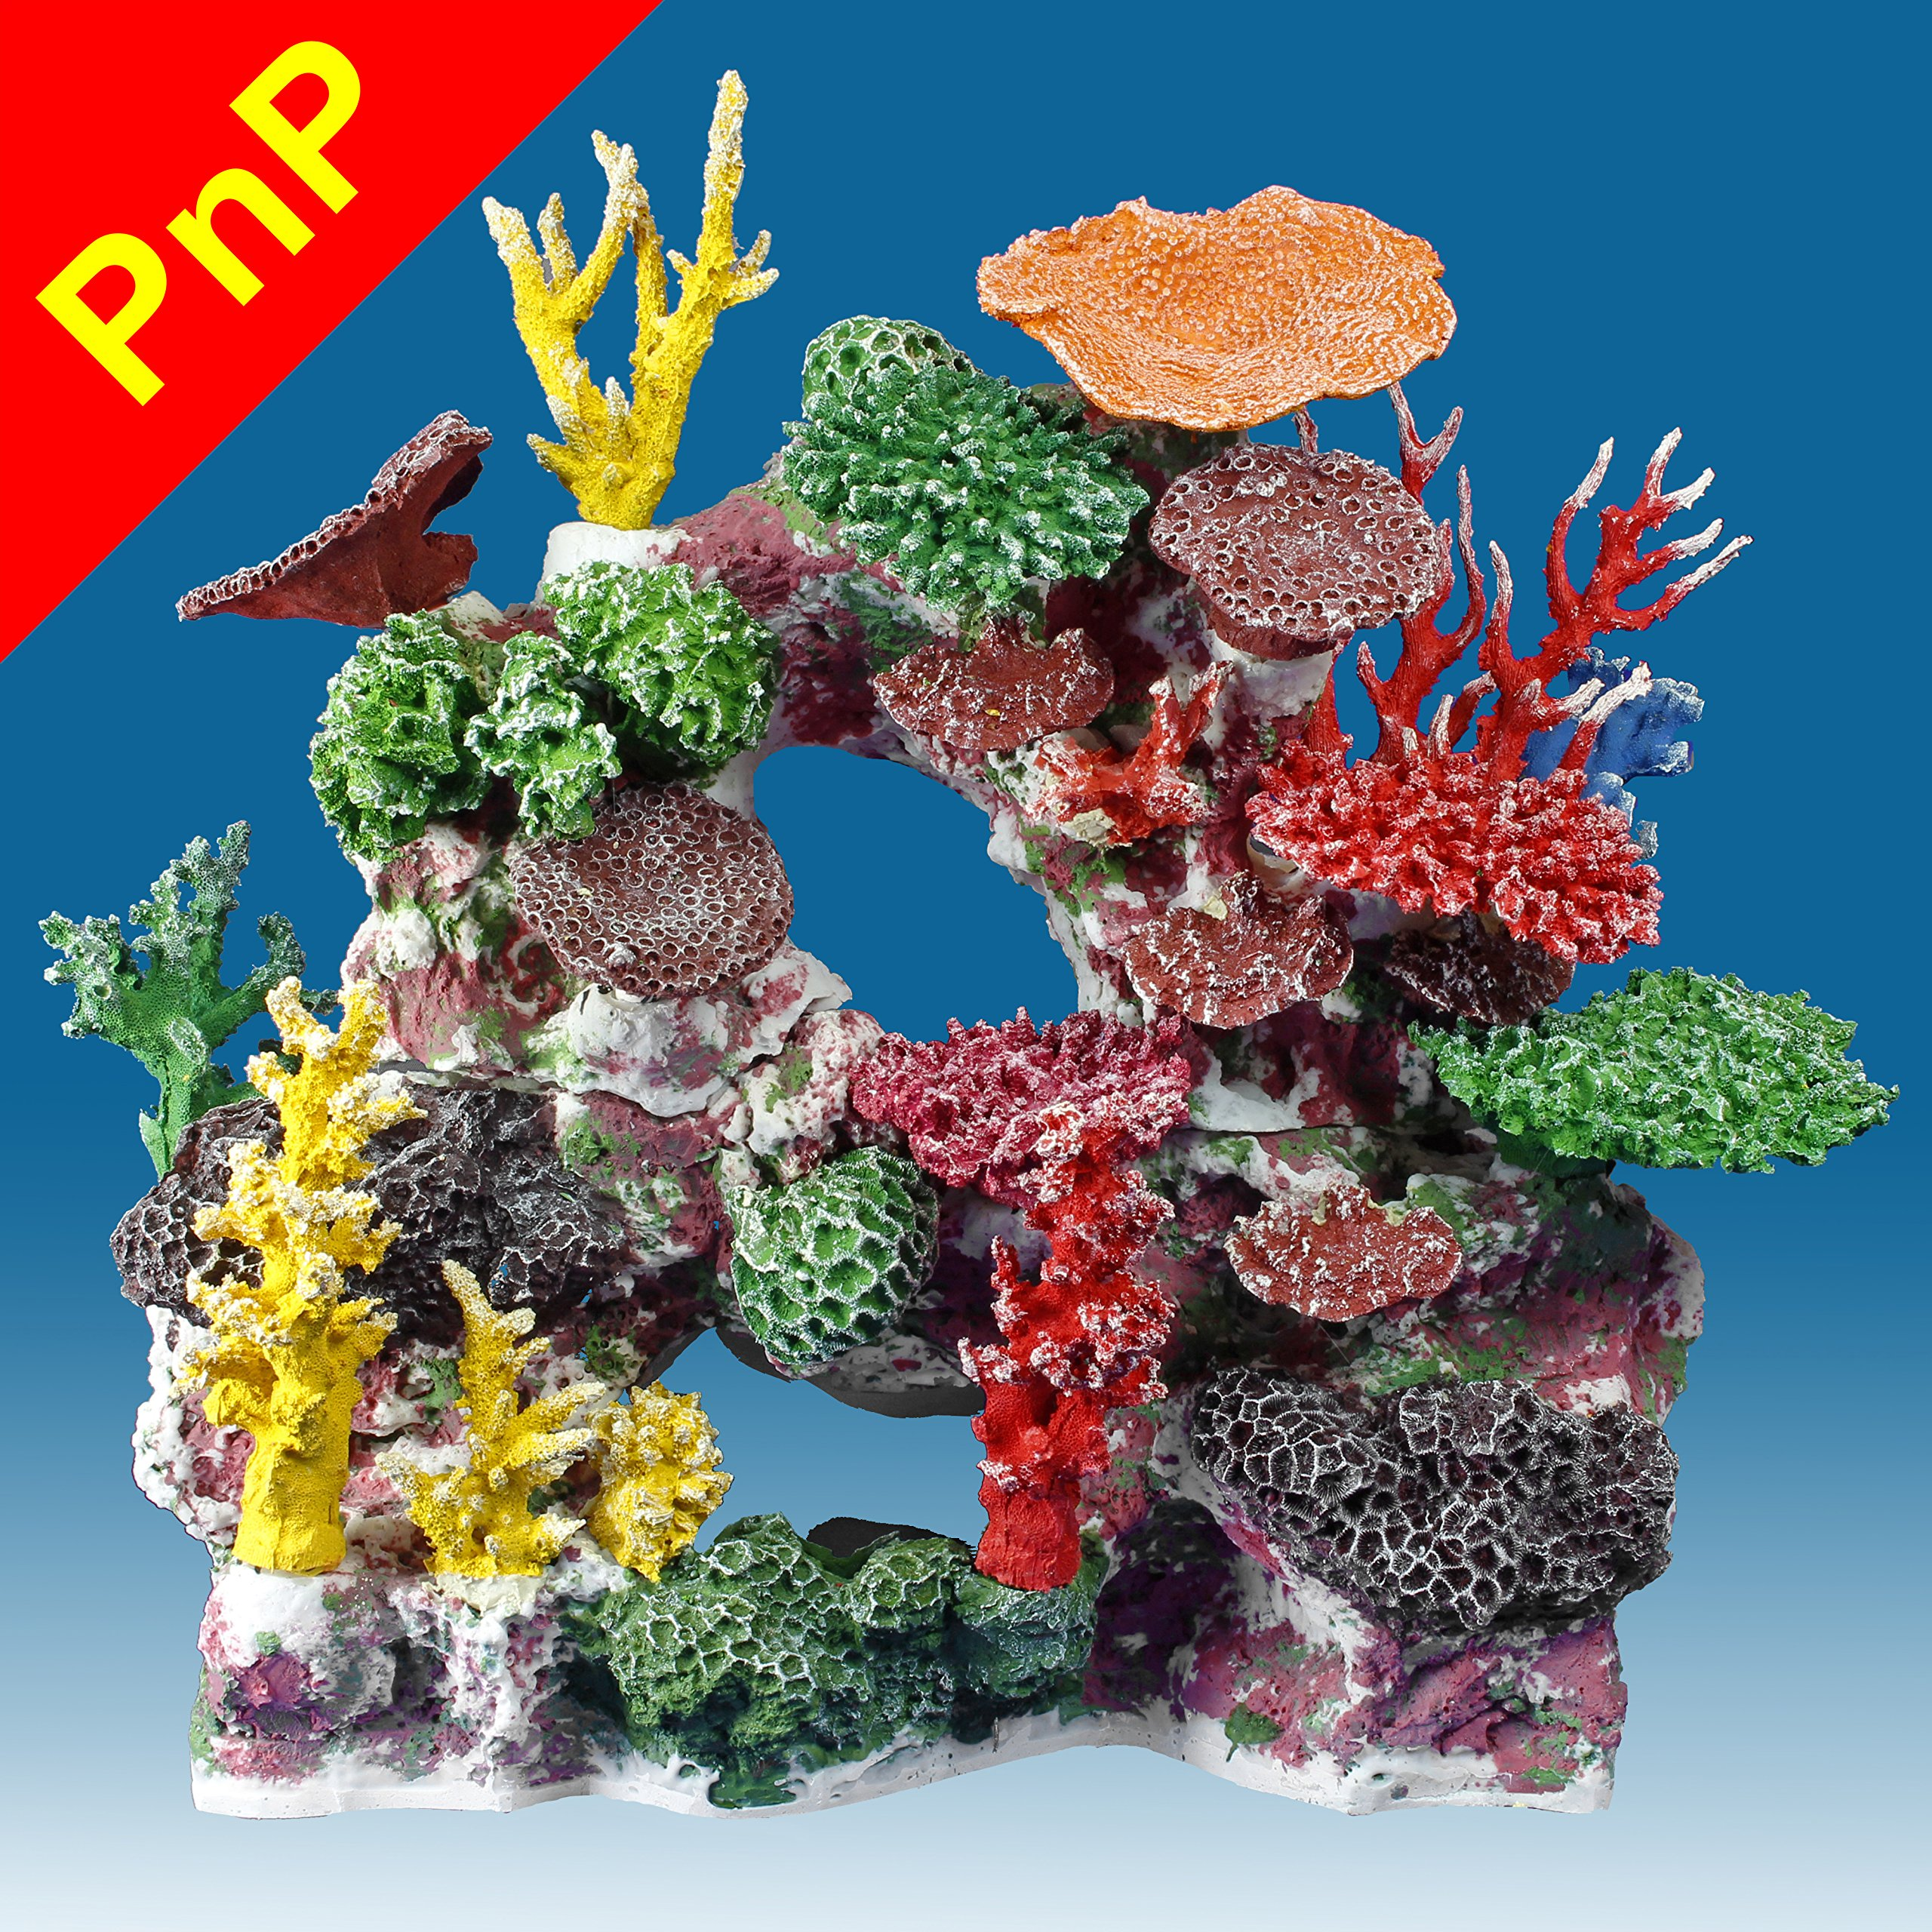 Instant Reef DM037PNP Large Artificial Coral Inserts Decor, Fake Coral Reef Decorations for Colorful Freshwater Fish Aquariums, Marine and Saltwater Fish Tanks by Instant Reef